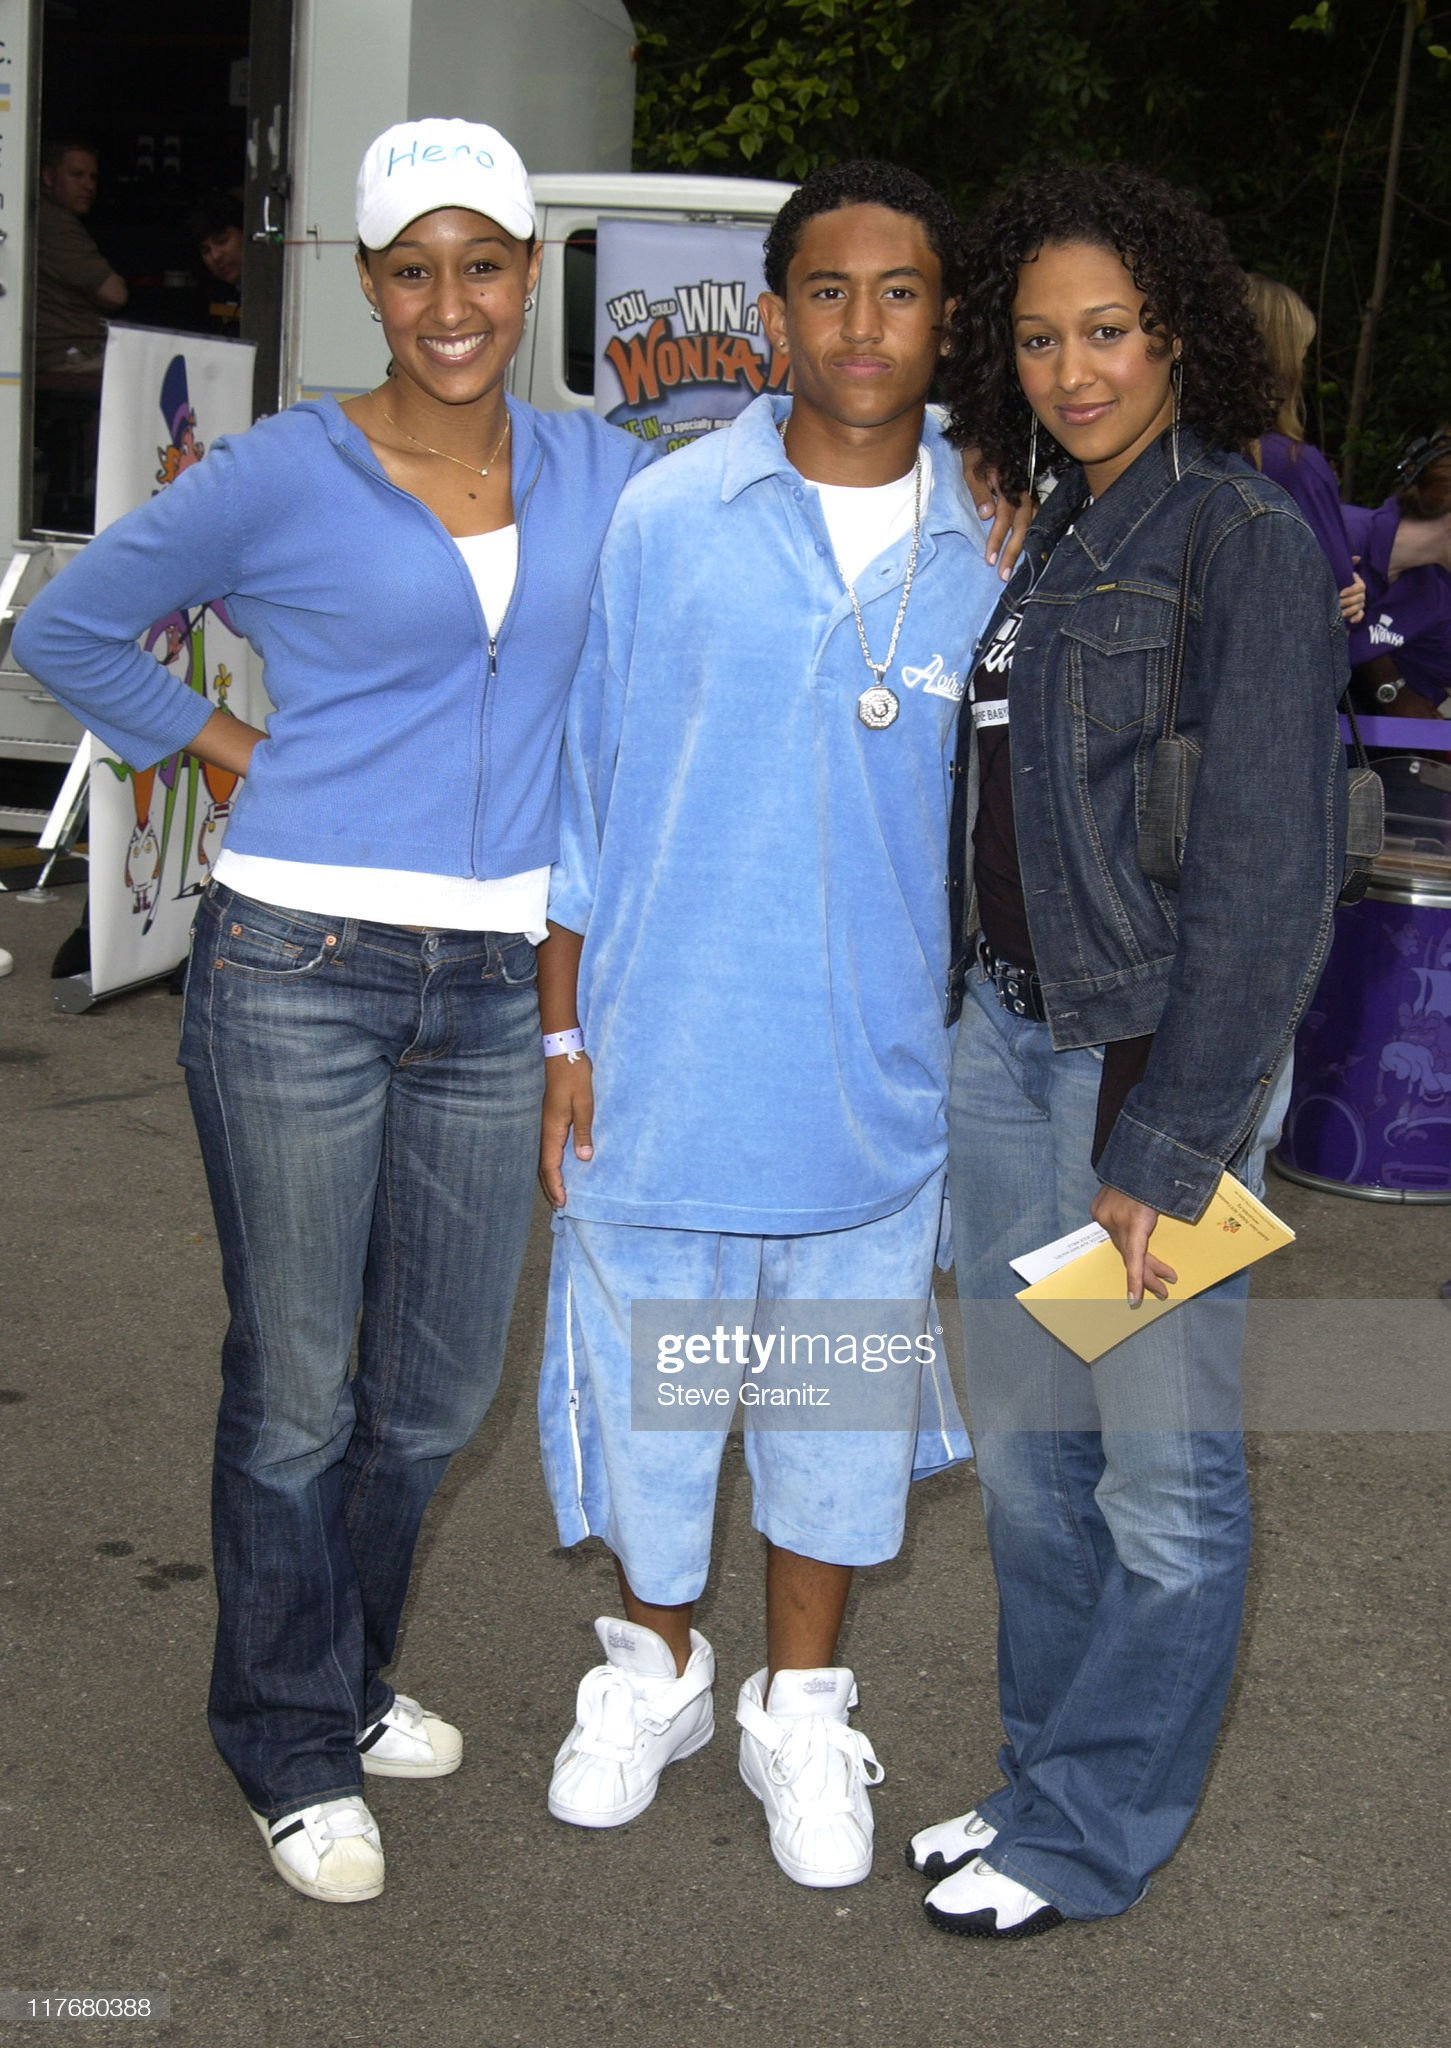 ¿Cuánto mide Tamera Mowry? - Altura - Real height Tia-tamera-brother-tahj-mowry-at-the-target-a-time-for-heroes-the-picture-id117680388?s=2048x2048